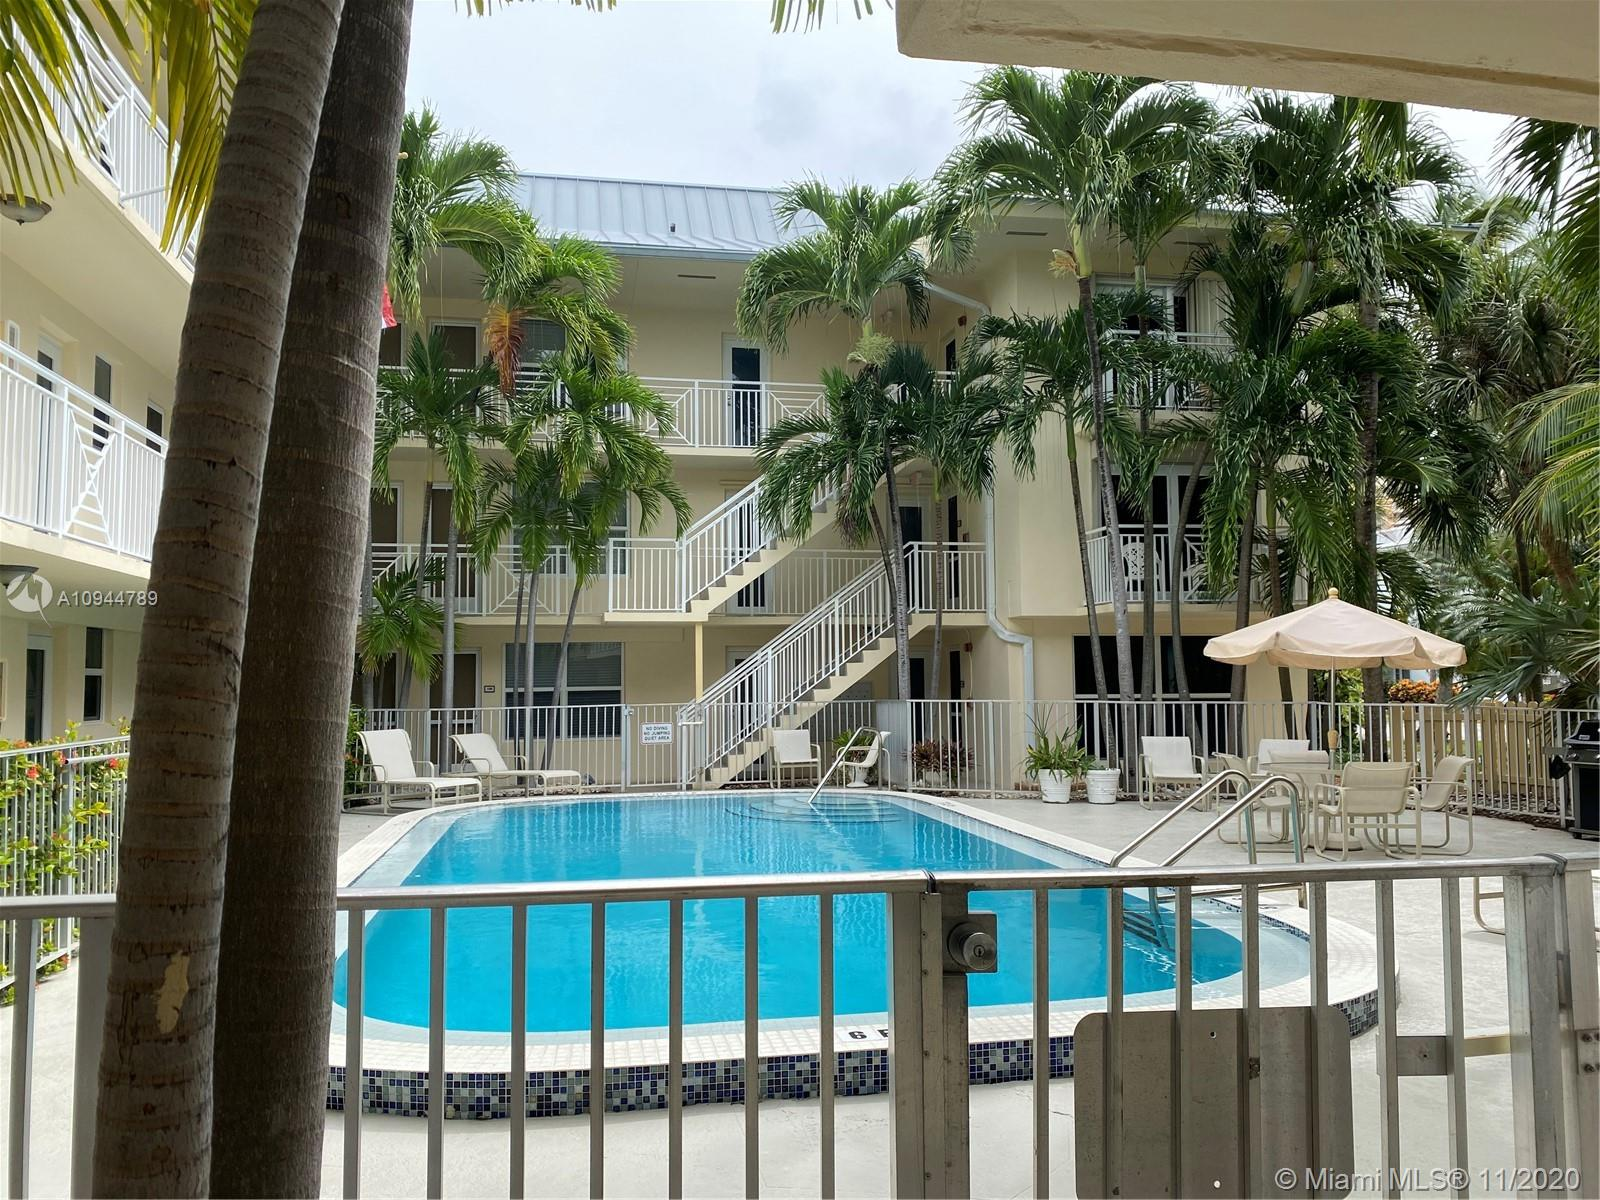 255 Sunrise Dr # 101, Key Biscayne, Florida 33149, 2 Bedrooms Bedrooms, ,2 BathroomsBathrooms,Residential,For Sale,255 Sunrise Dr # 101,A10944789